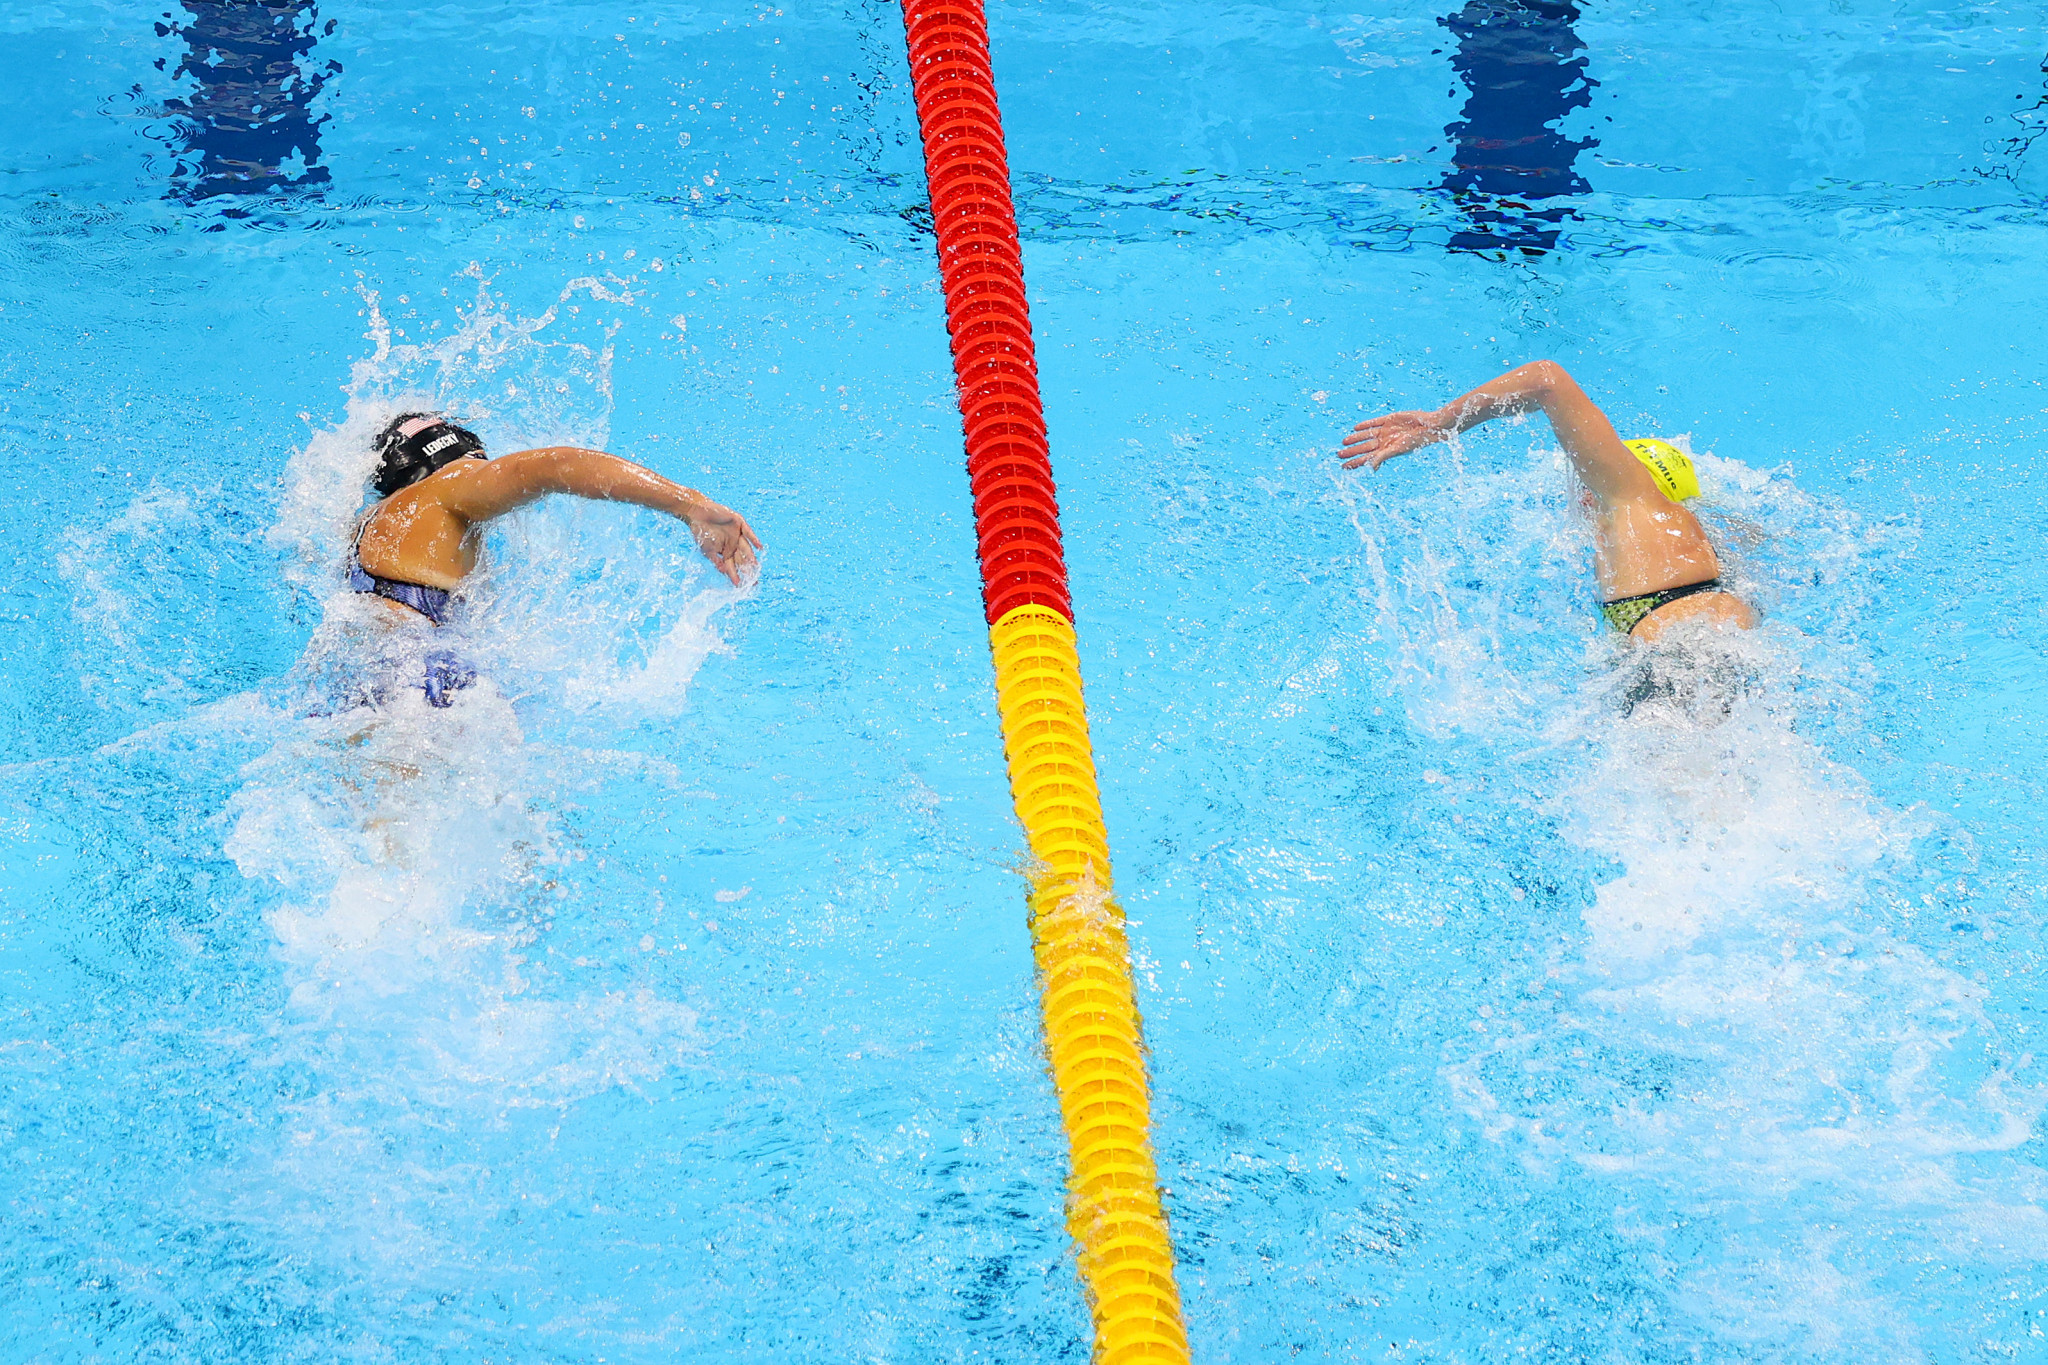 Australia's Ariarne Titmus, right, came from behind to snatch victory from five-time Olympic champion Katie Ledecky of the United States in a women's 400m freestyle final for the ages ©Getty Images